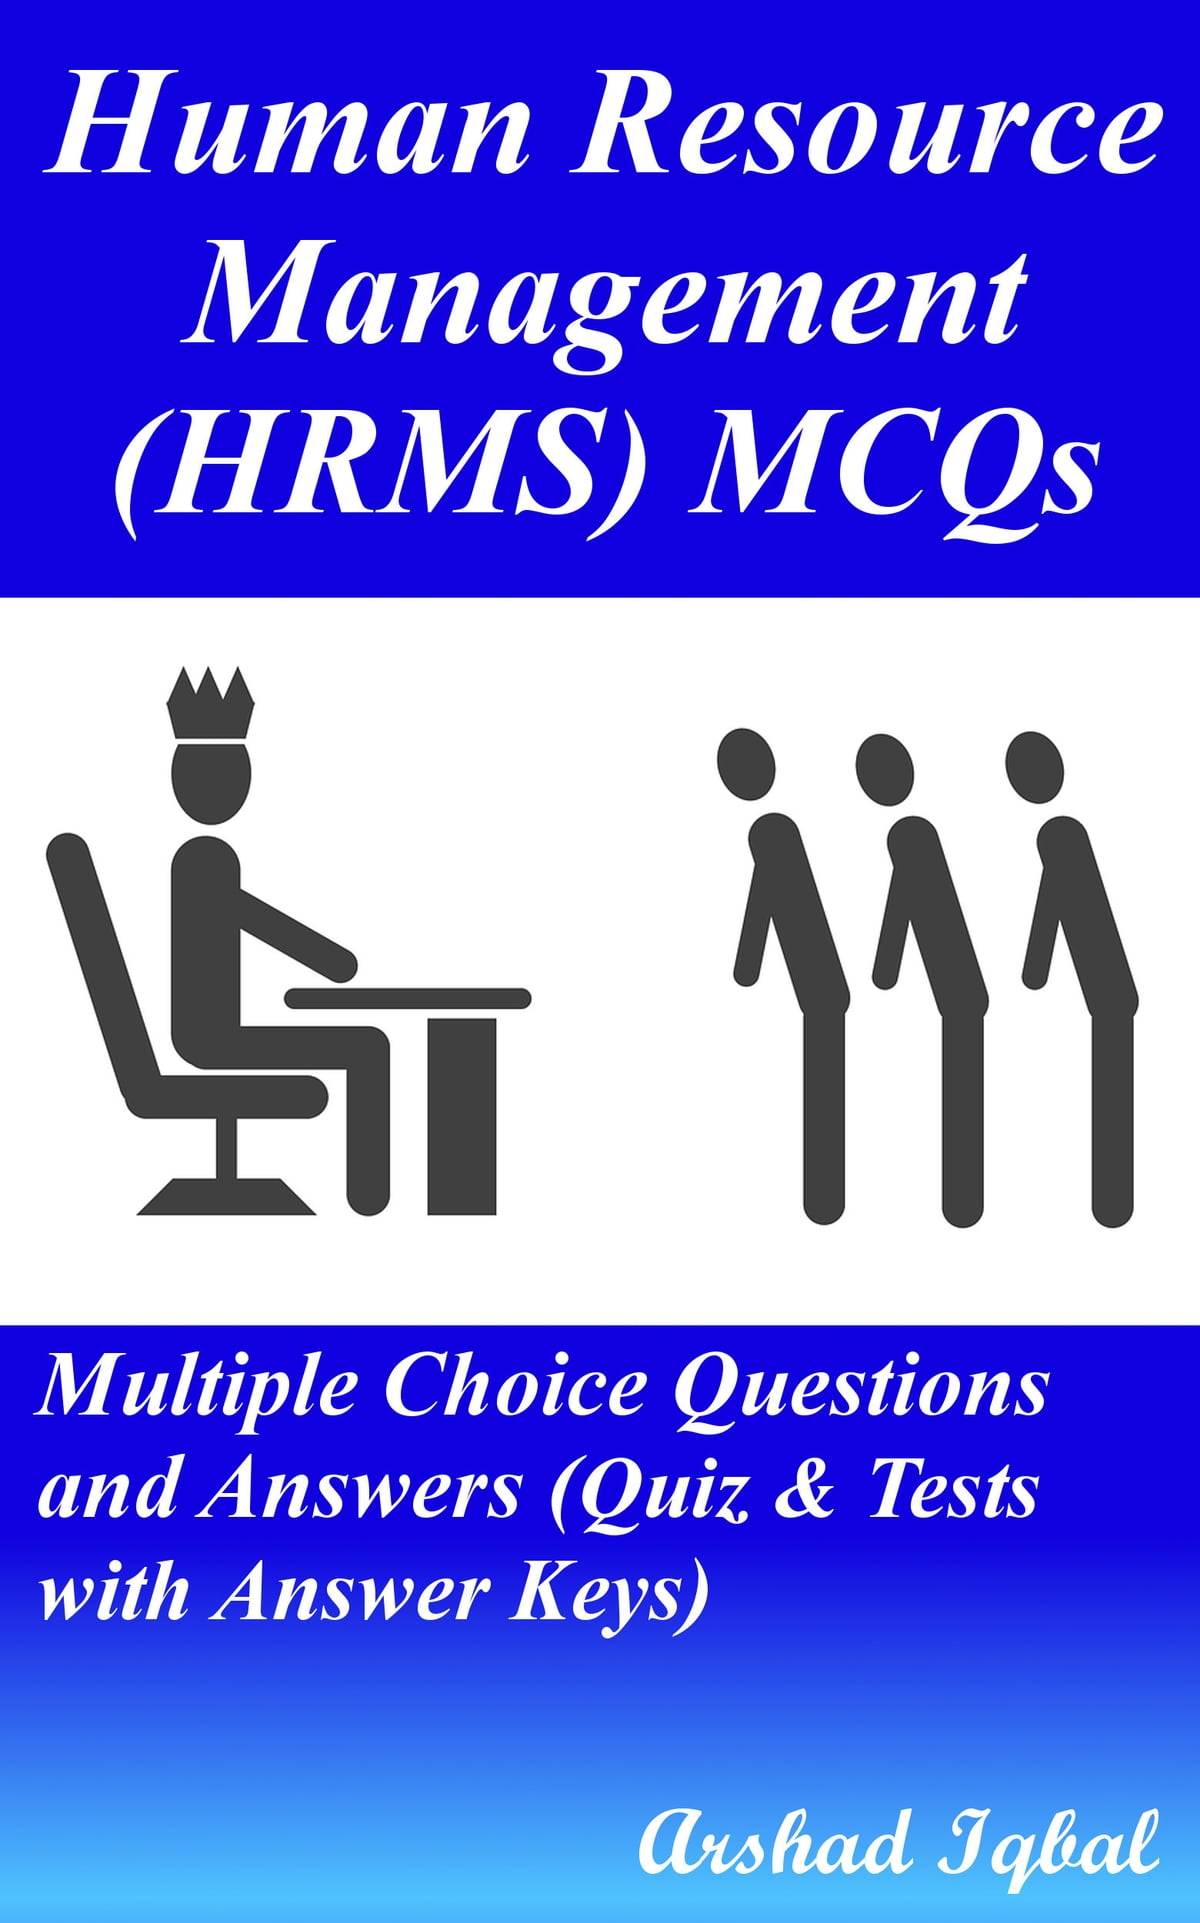 Human Resource Management MCQs: Multiple Choice Questions